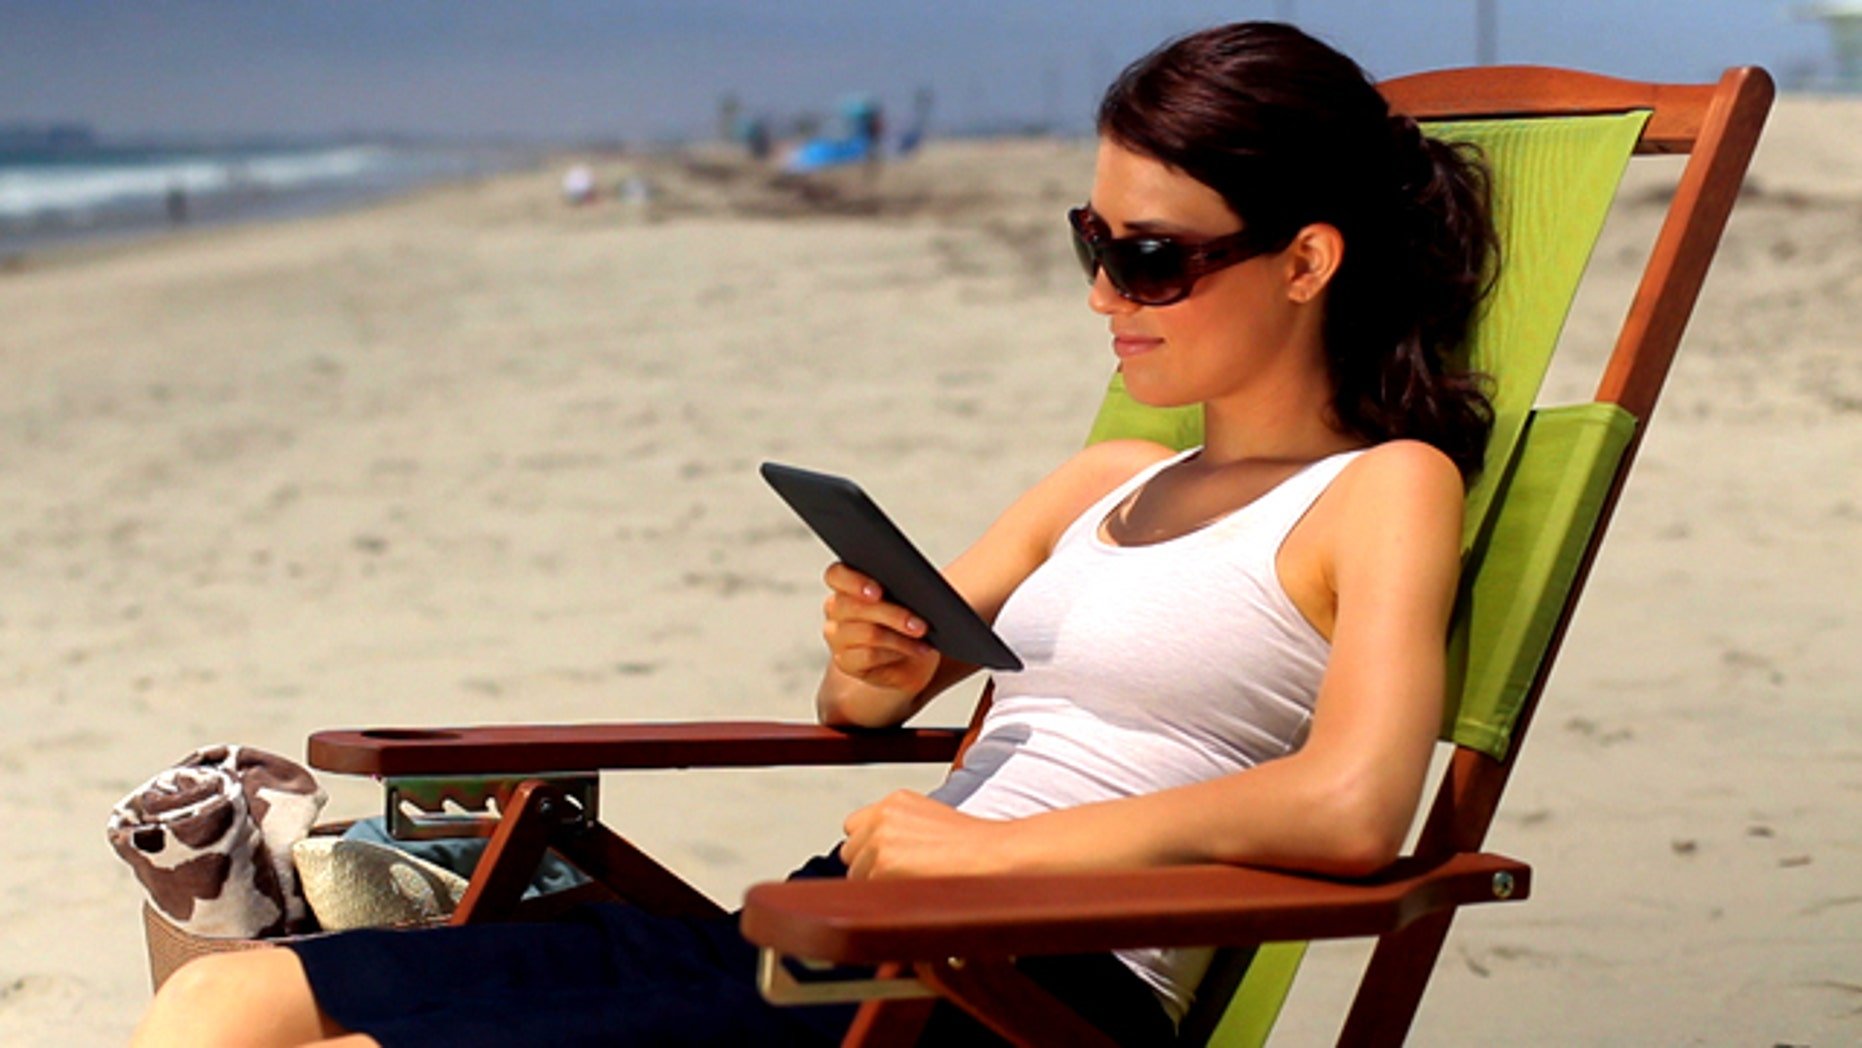 A woman reads an Amazon Kindle ebook reader at the beach. The Internet retail giant is widely expected to be planning a larger tablet PC to compete with the iPad..